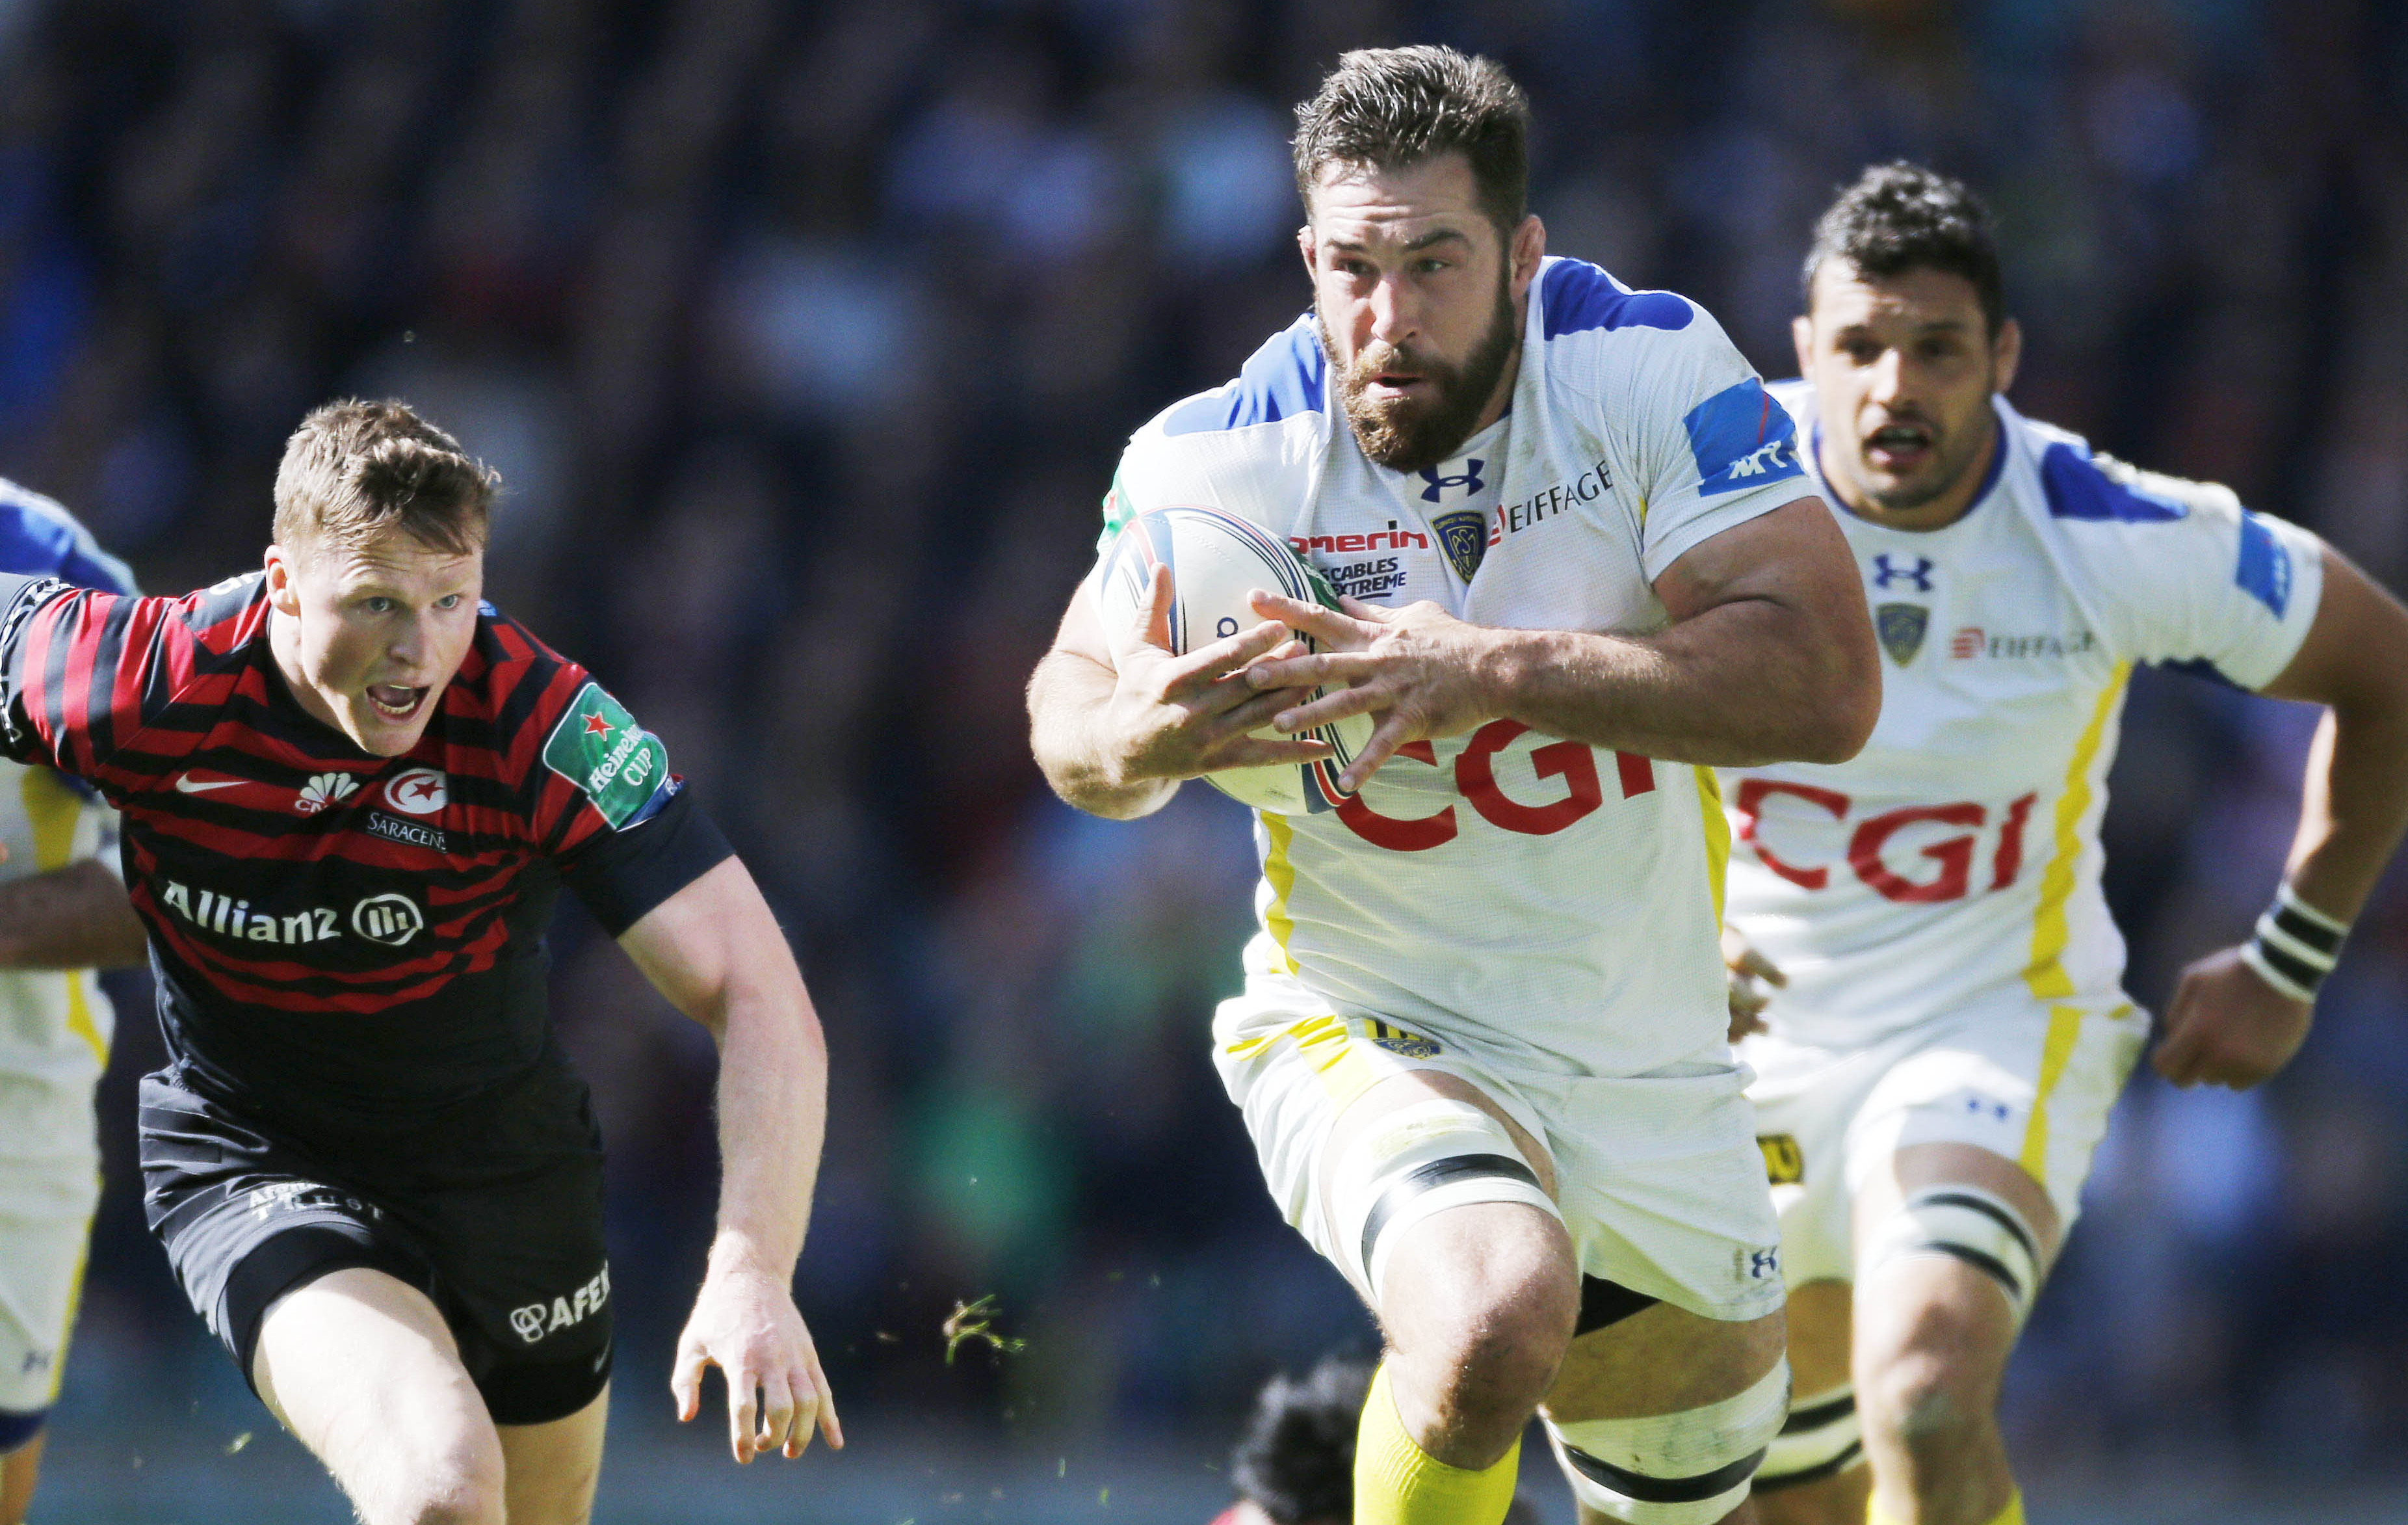 Rugby - Coupe d'Europe - Du costaud pour recommencer